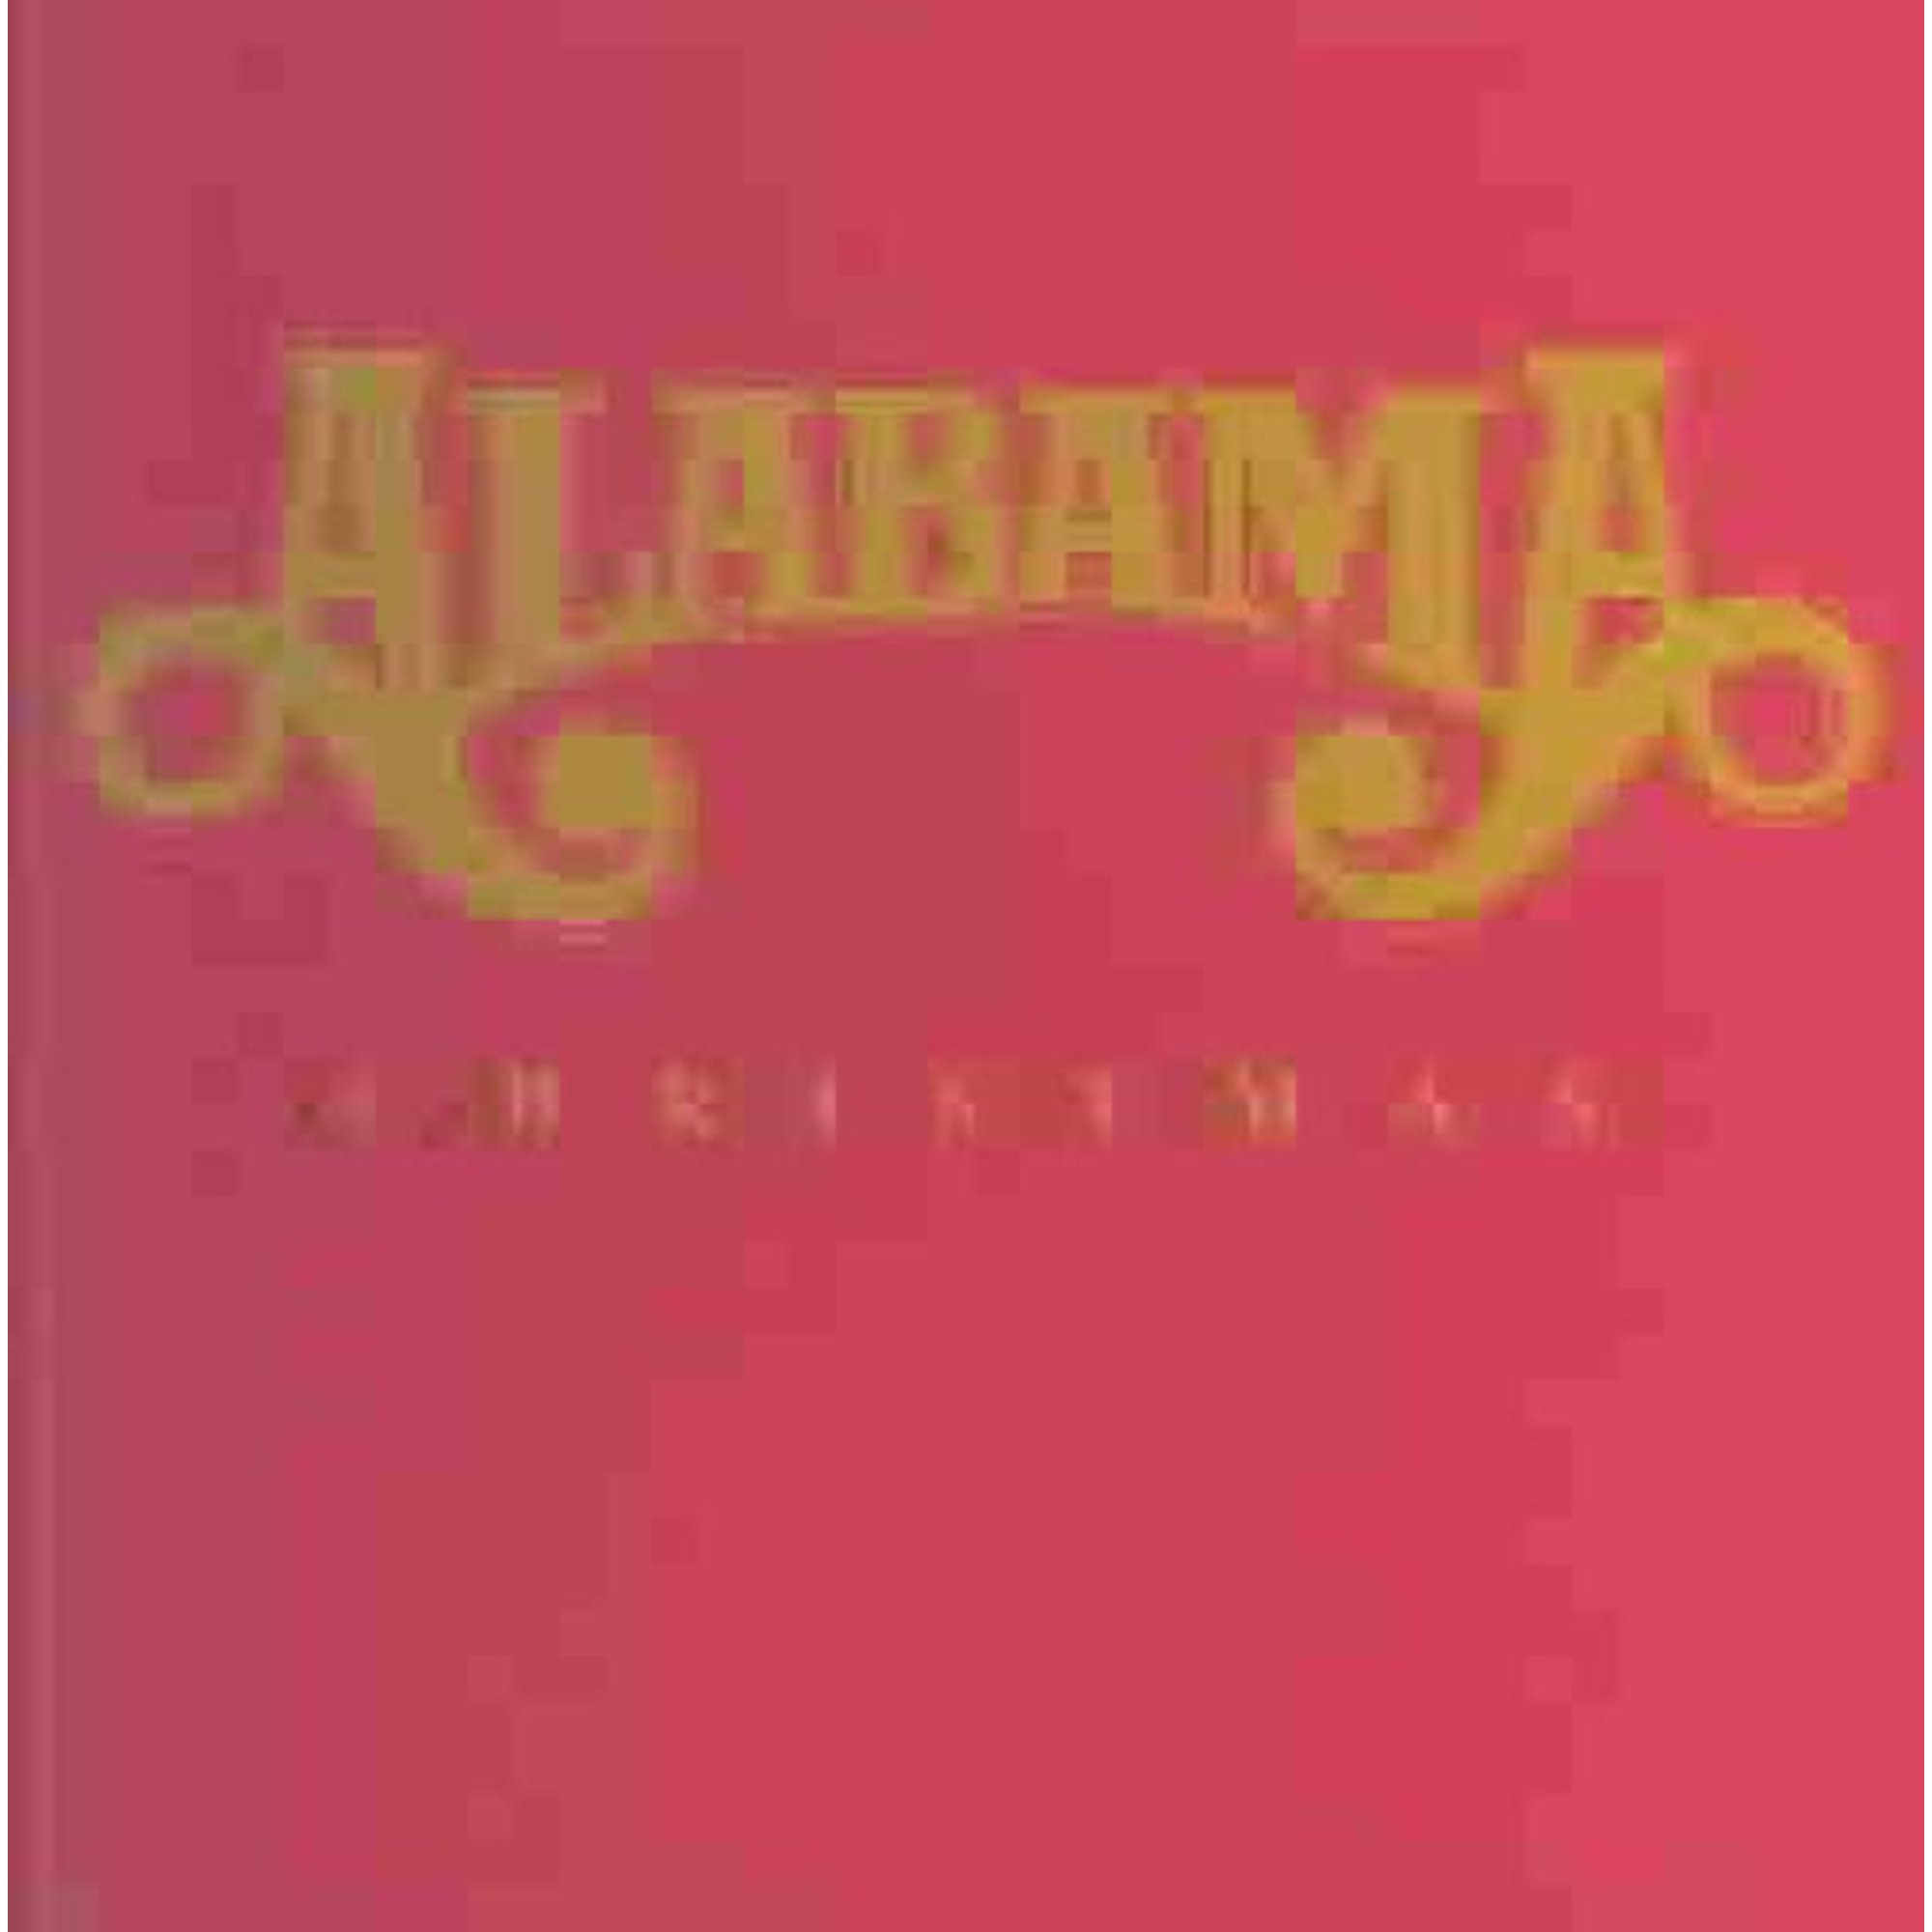 Alabama Christmas.Alabama Christmas Cd Walmart Canada